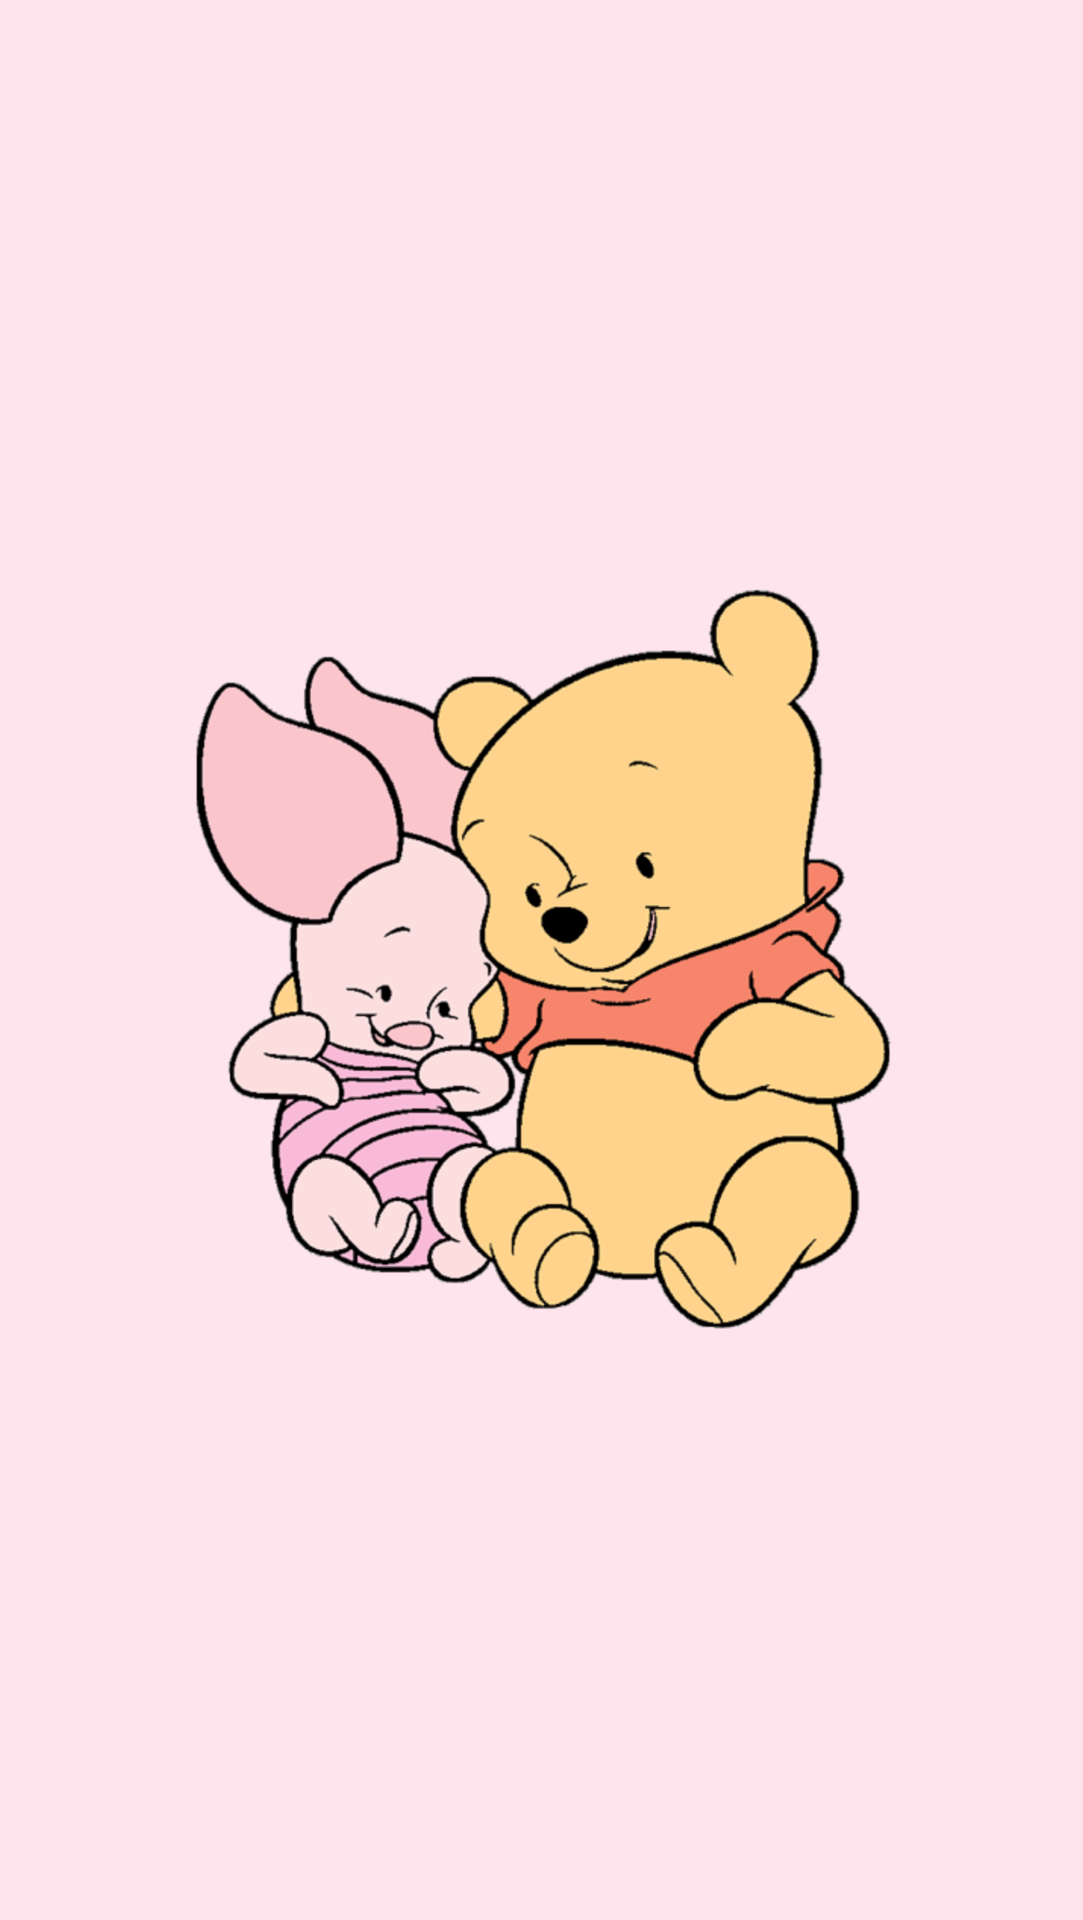 Baby Winnie The Pooh Wallpapers Top Free Baby Winnie The Pooh Backgrounds Wallpaperaccess